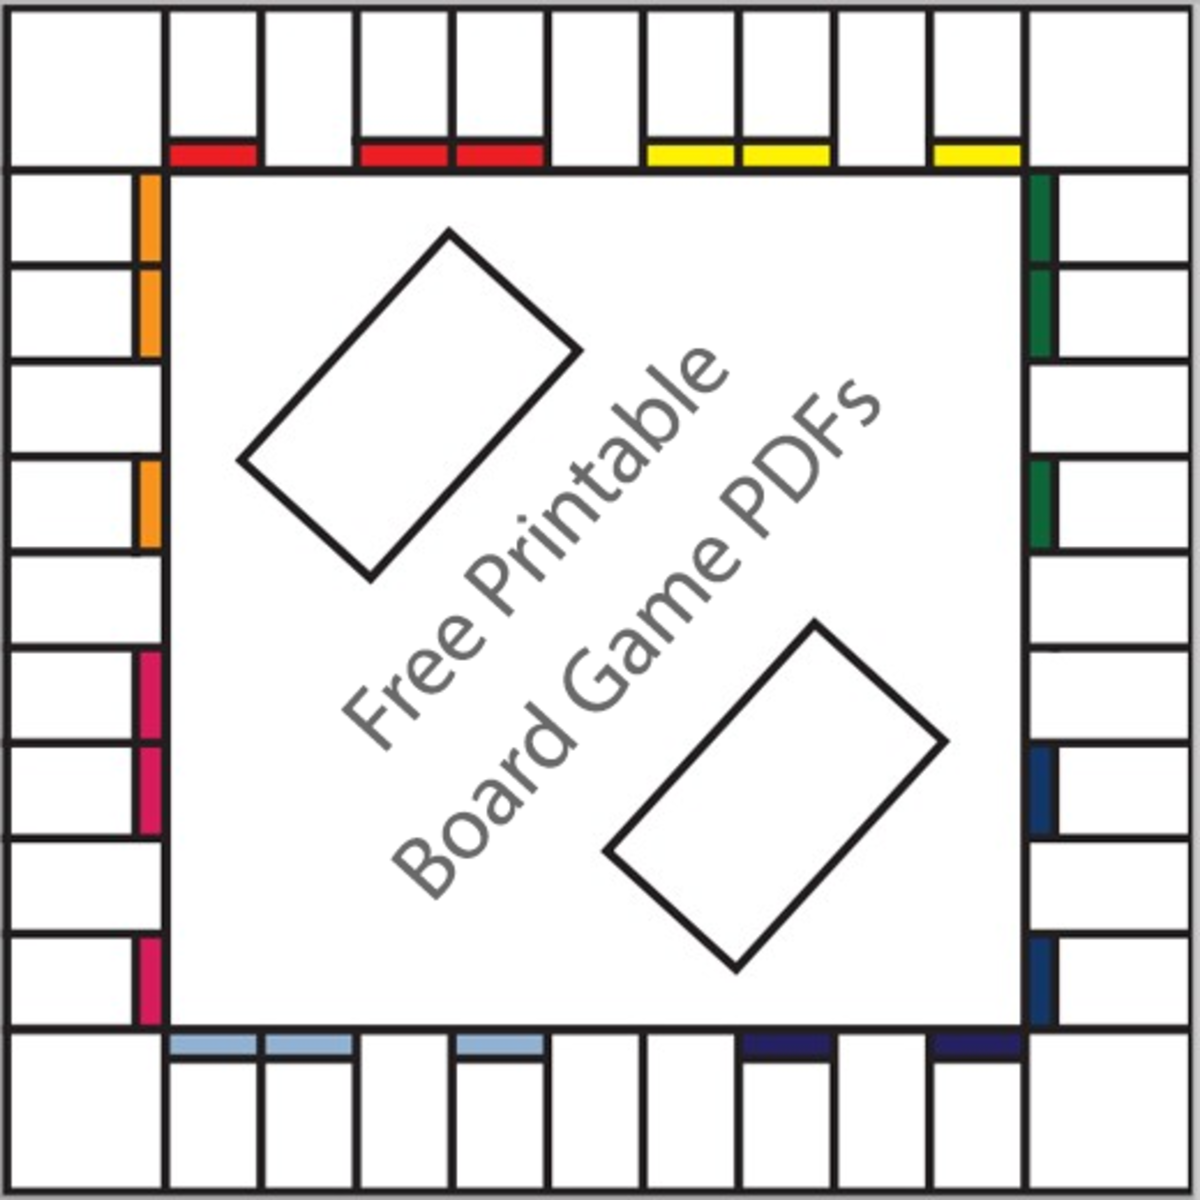 16 free printable board game templates hubpages. Black Bedroom Furniture Sets. Home Design Ideas